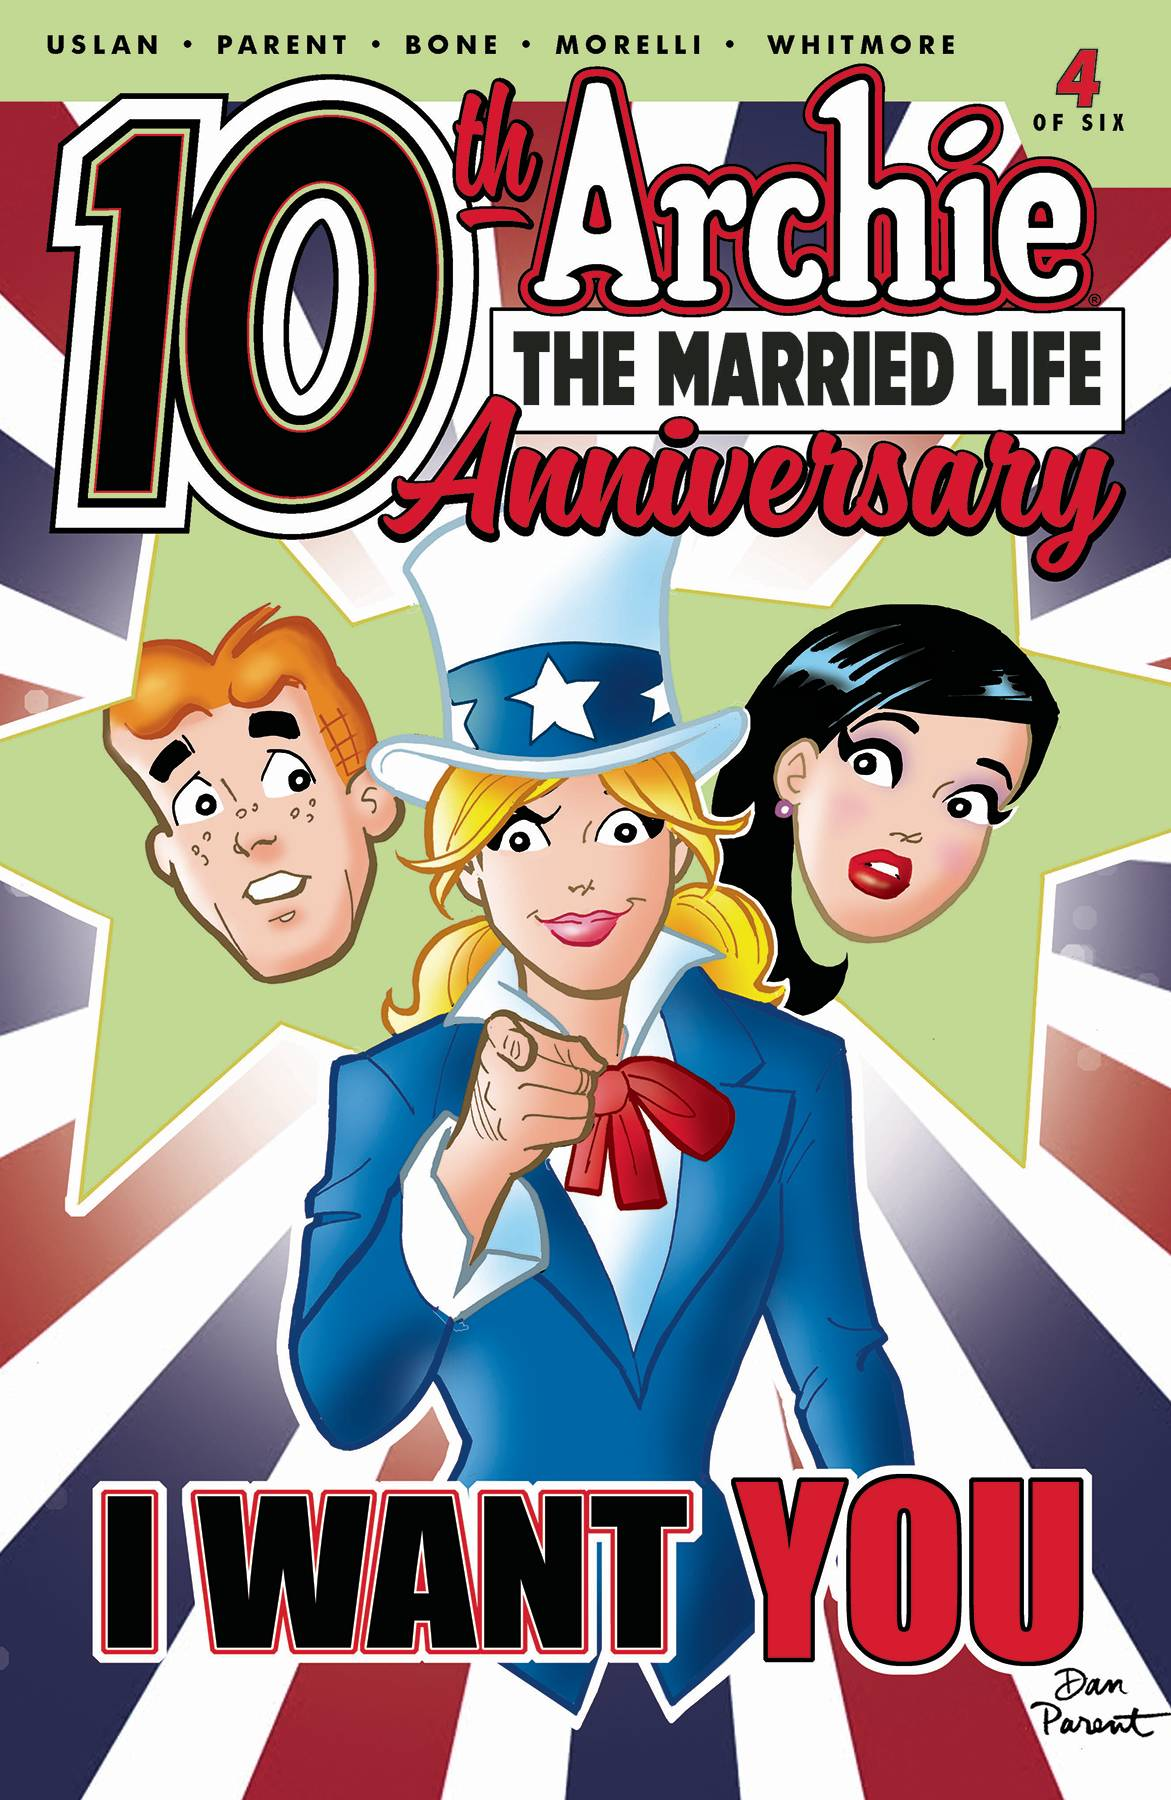 Archie - The Married Life: 10 Years Later #4 (2019)